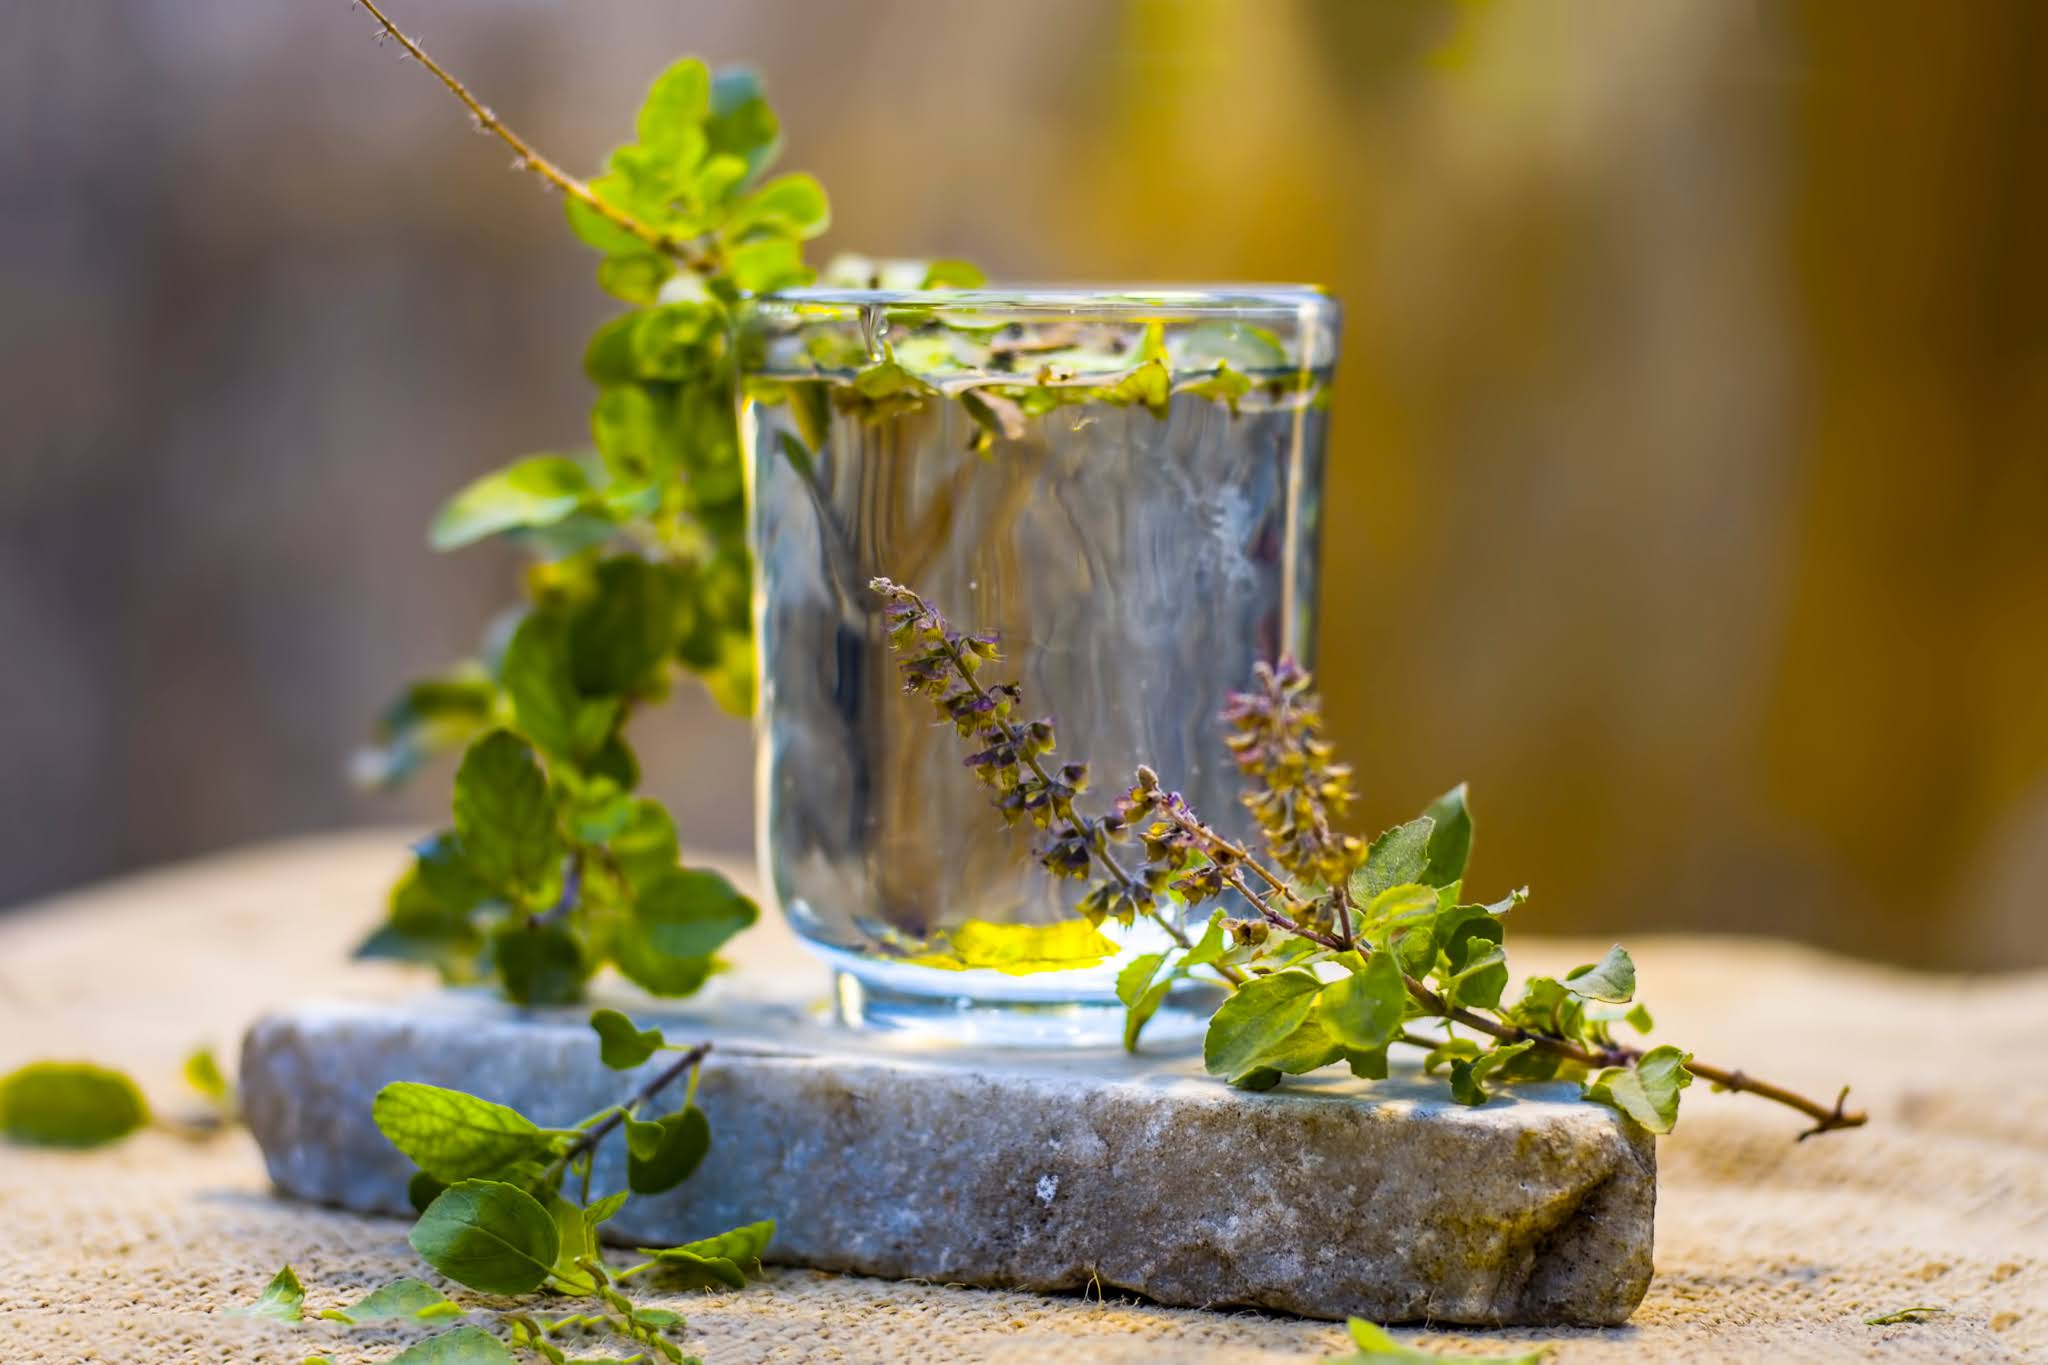 reduce acidity problem naturally at home by Tulsi Leaves